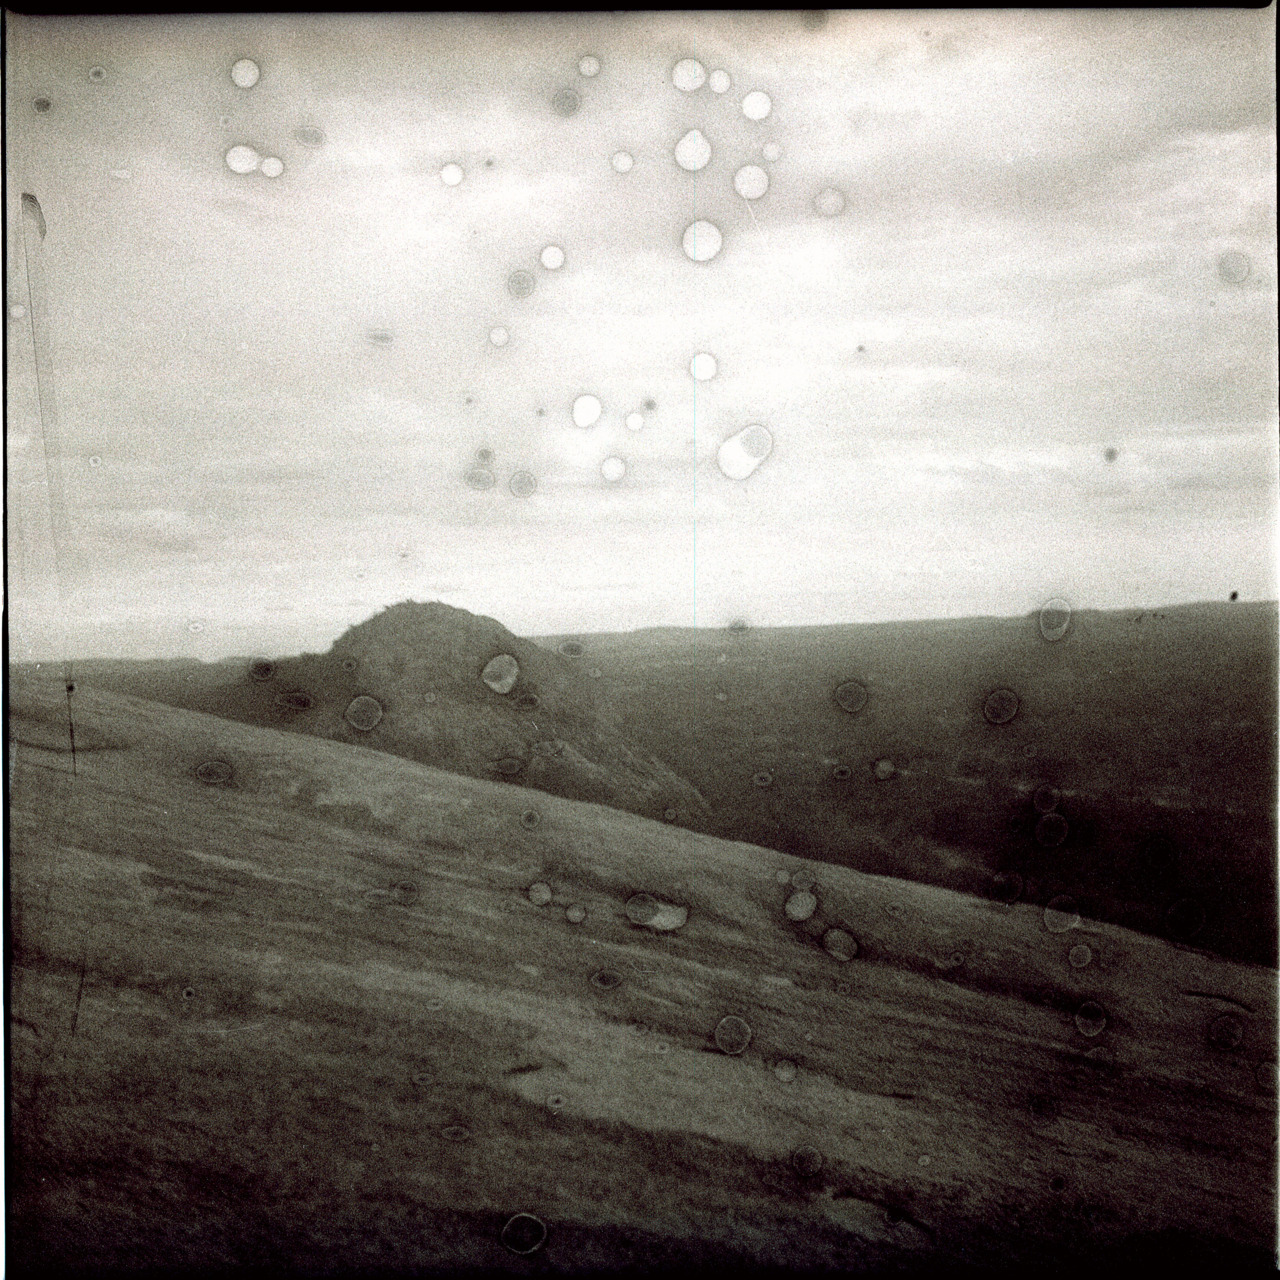 Enchanted Rock, title undecided by Tiffany R. DeJesus Medium Format; 120mm, Rolleicord II